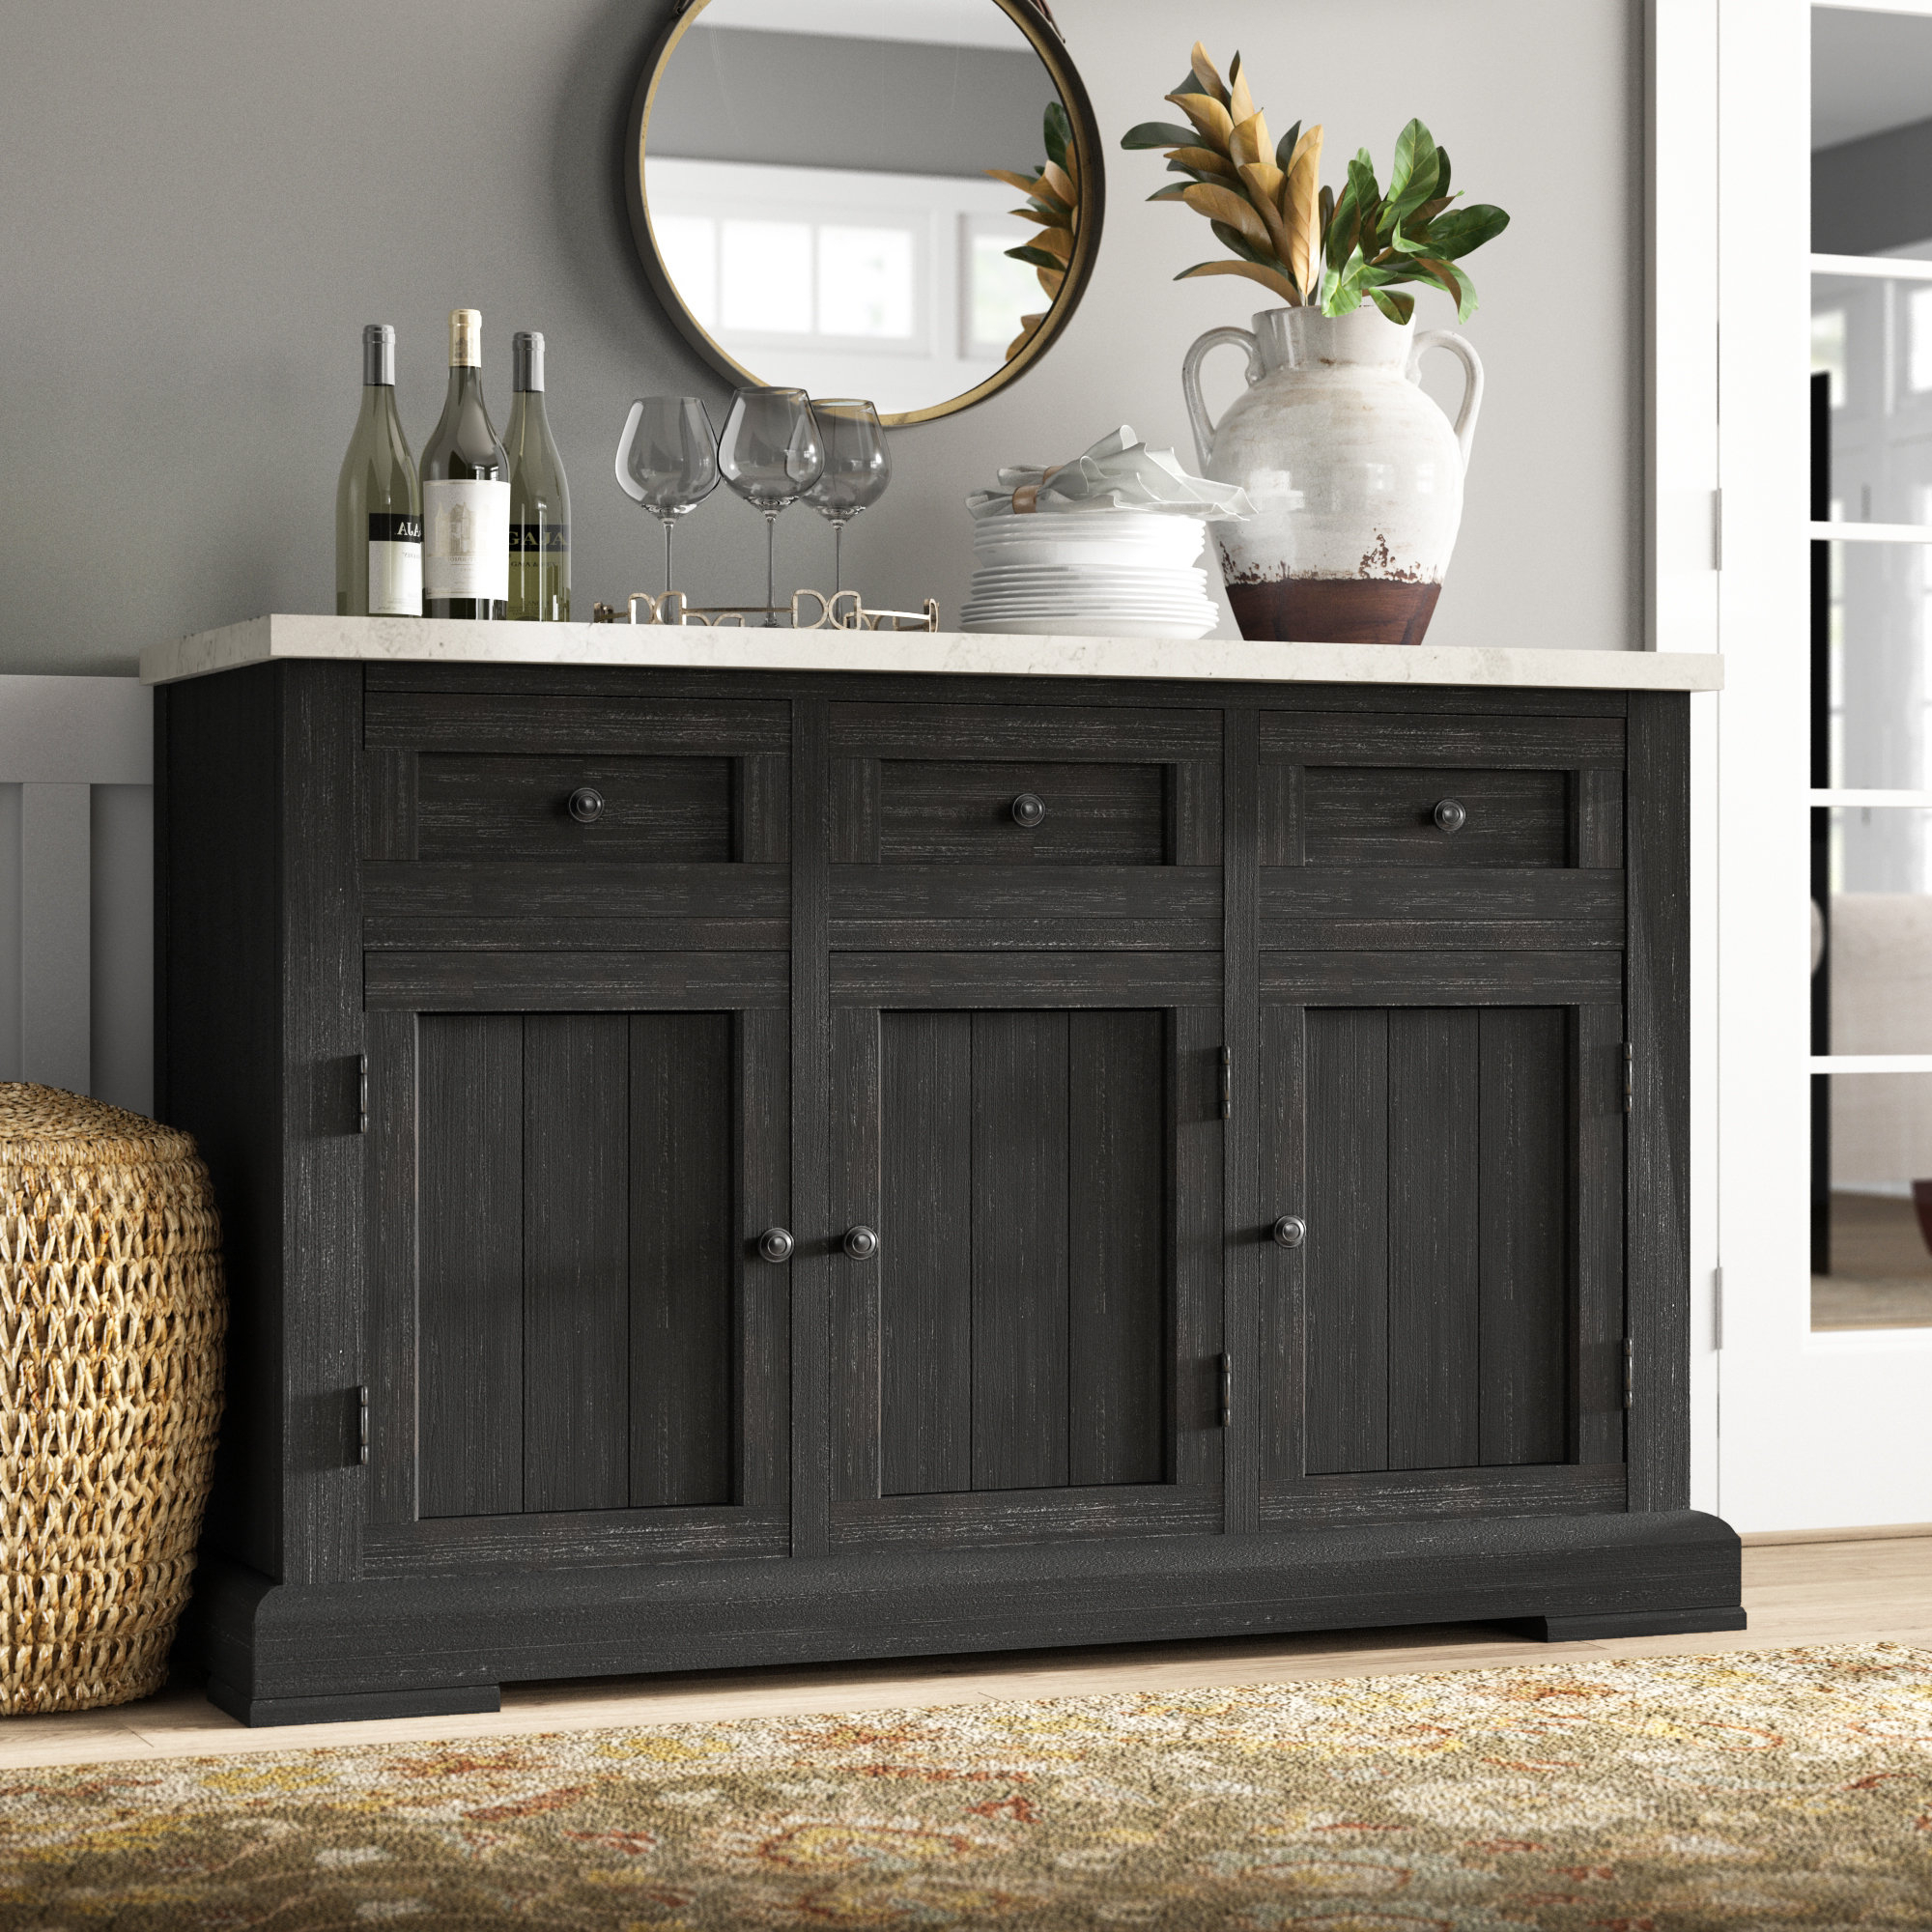 Chicoree Charlena Sideboards Regarding Preferred Ballintoy Wooden Sideboard (View 4 of 20)